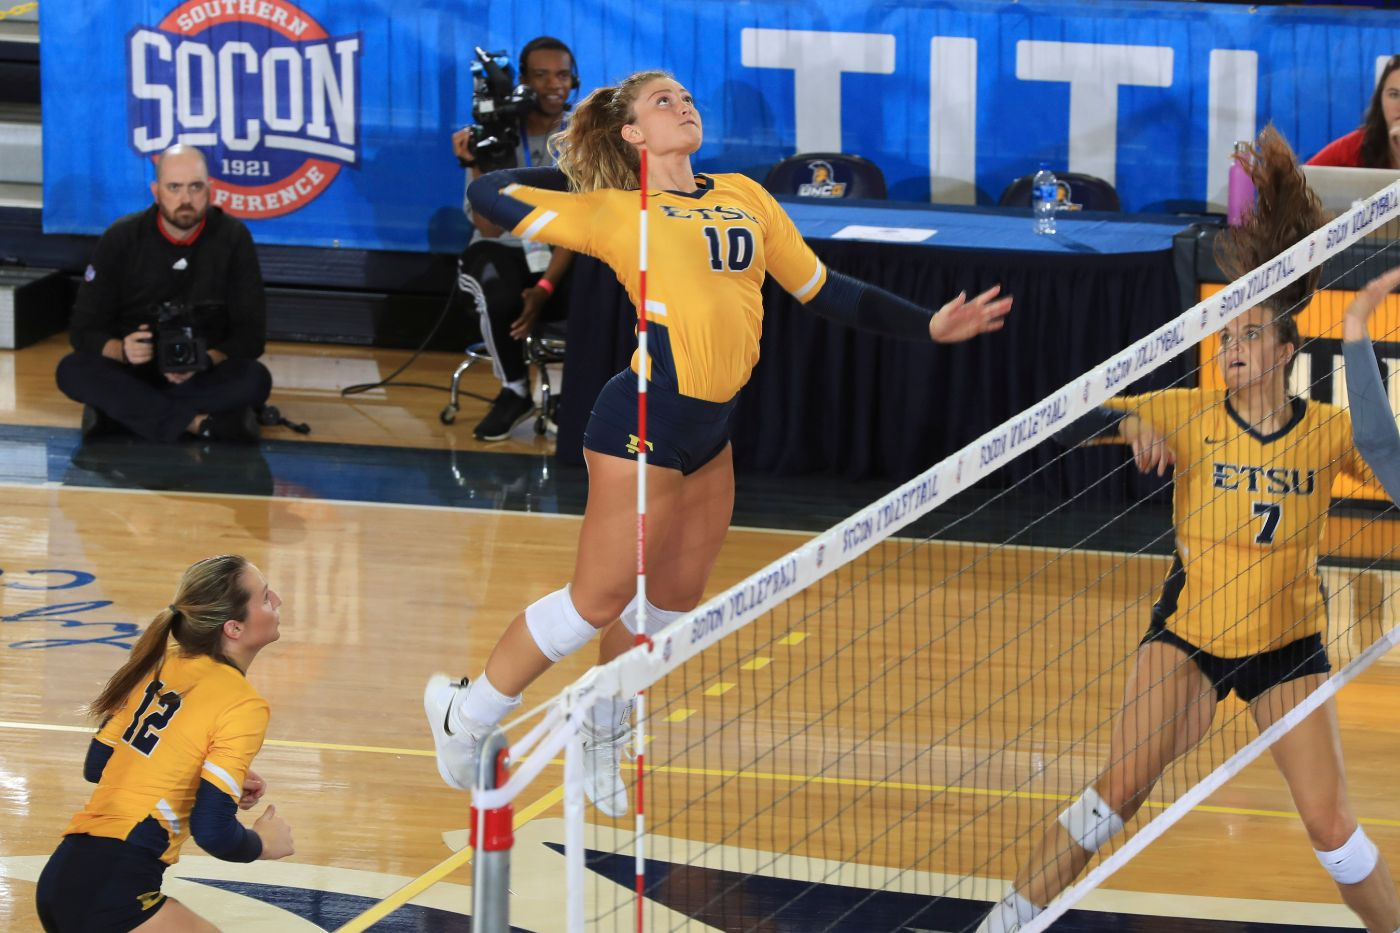 Bucs advance to semifinals after 3-0 sweep over The Citadel